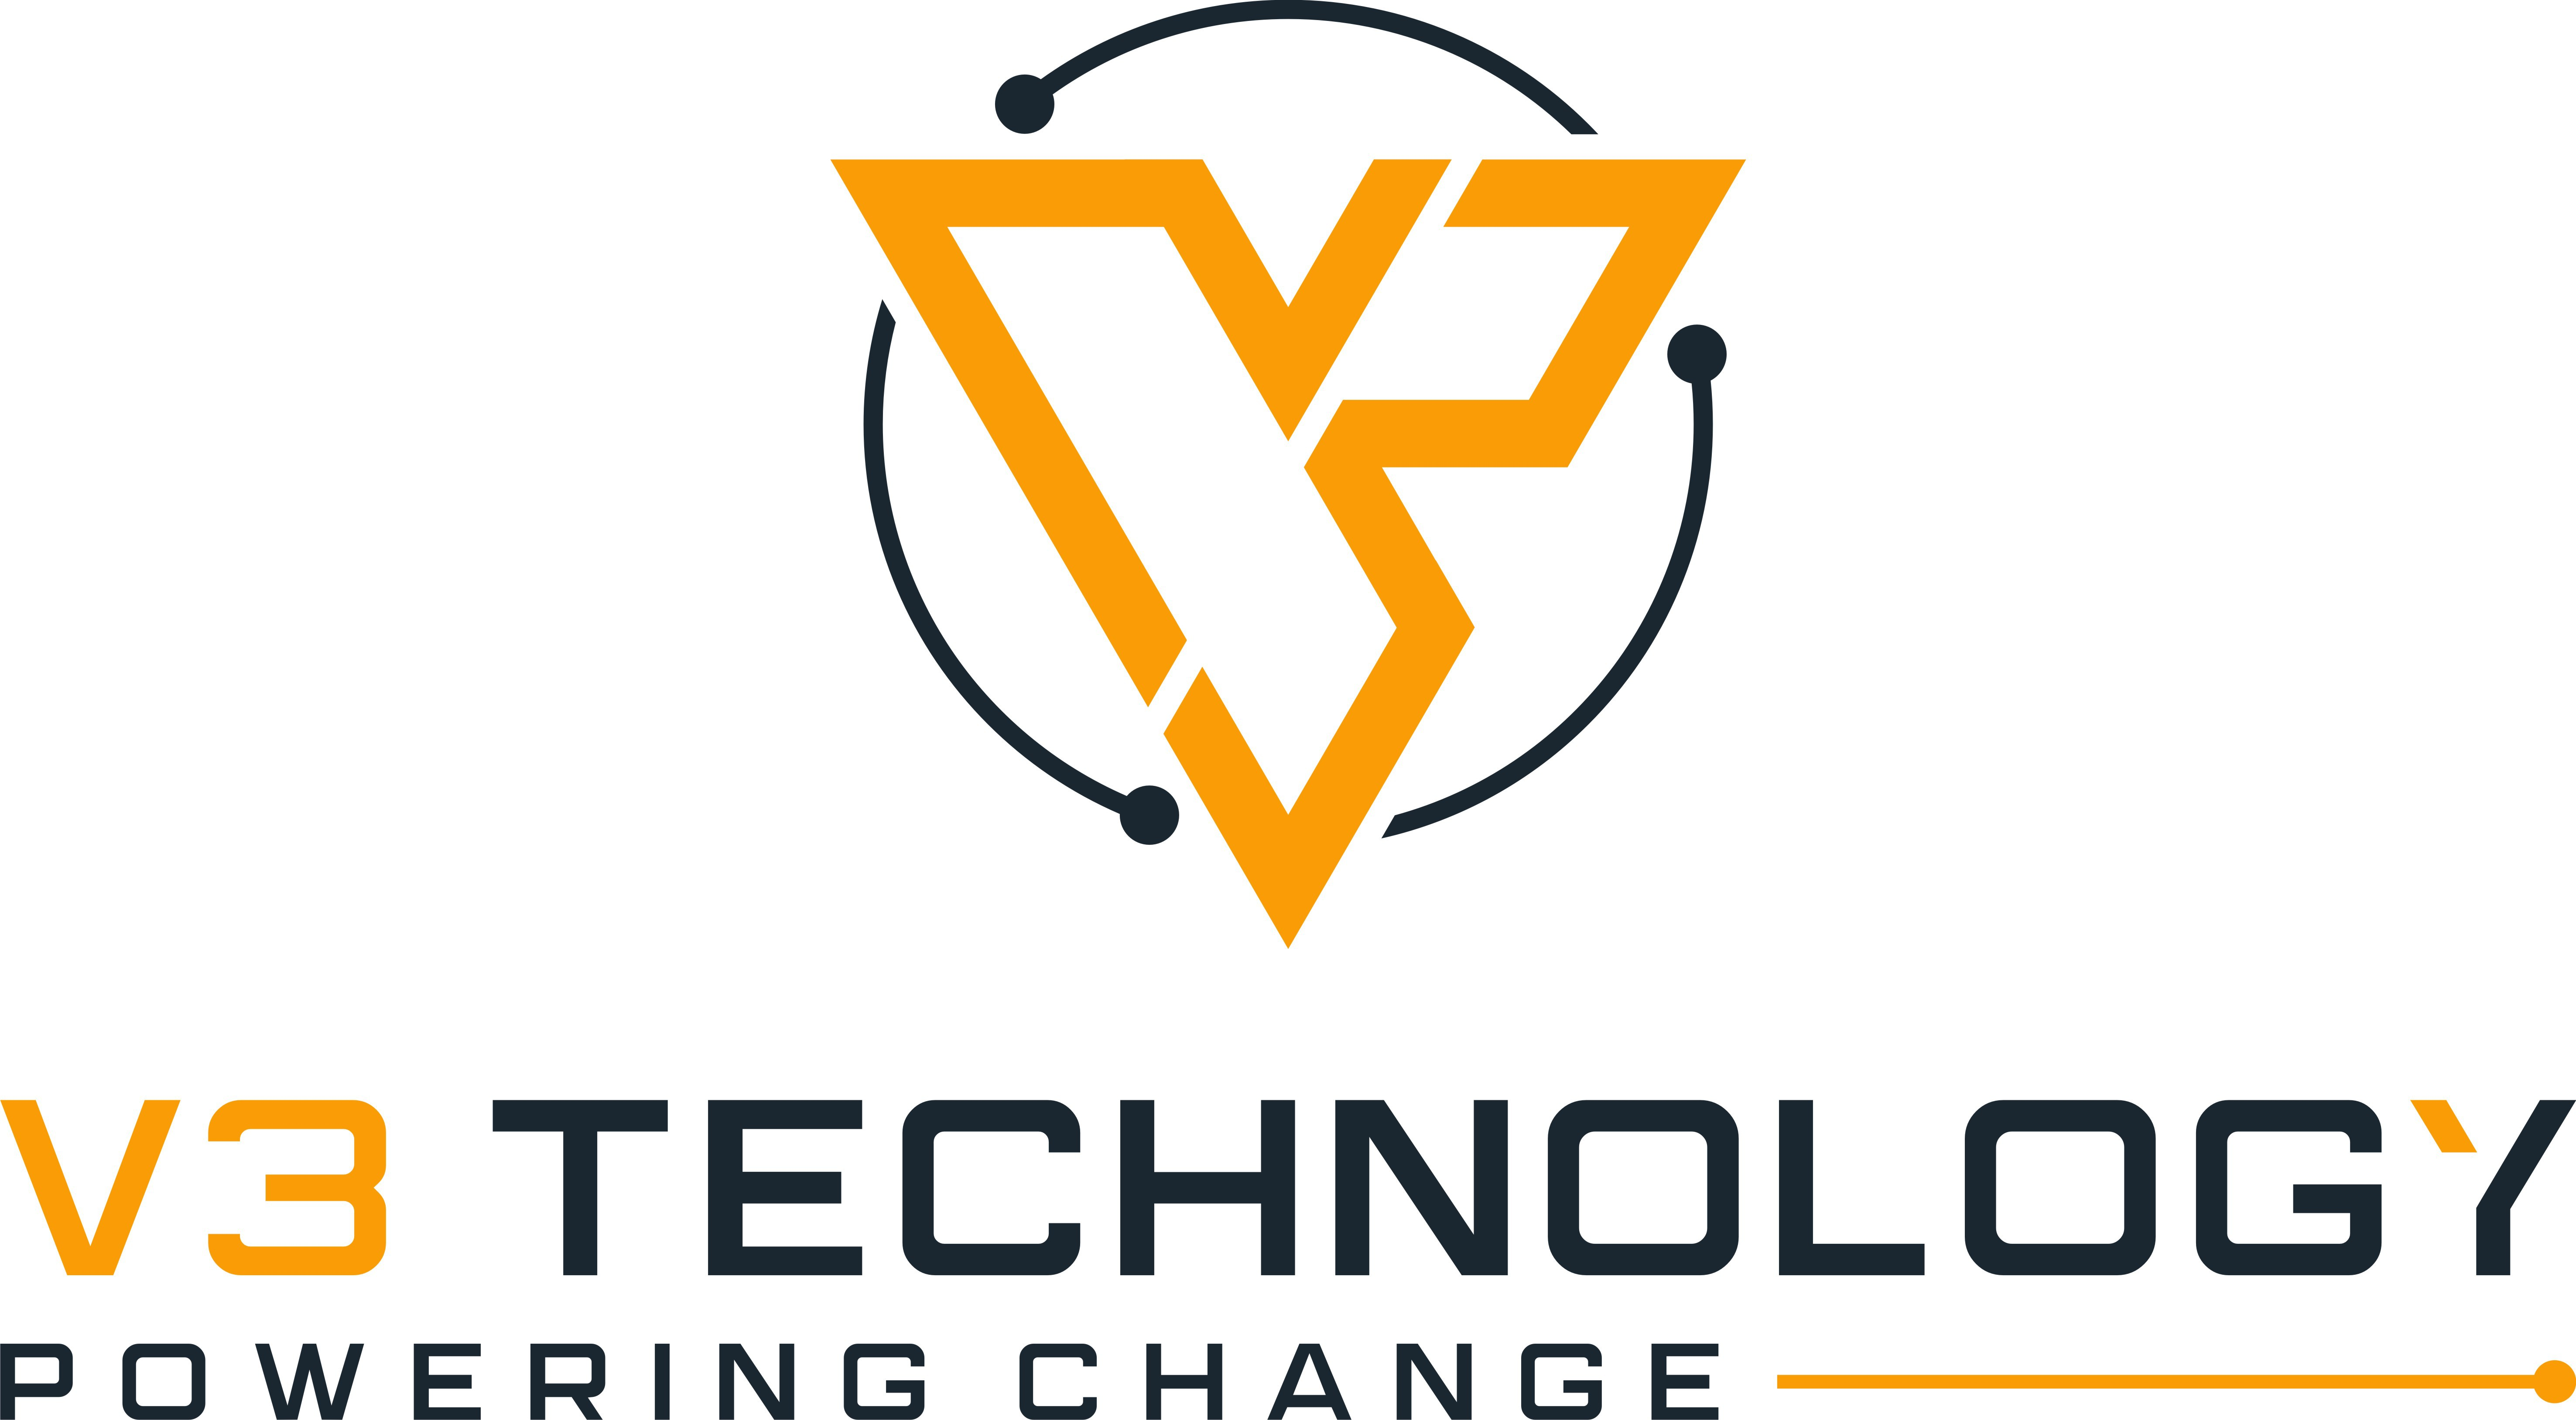 Technology company needs edgy design with professional feel.